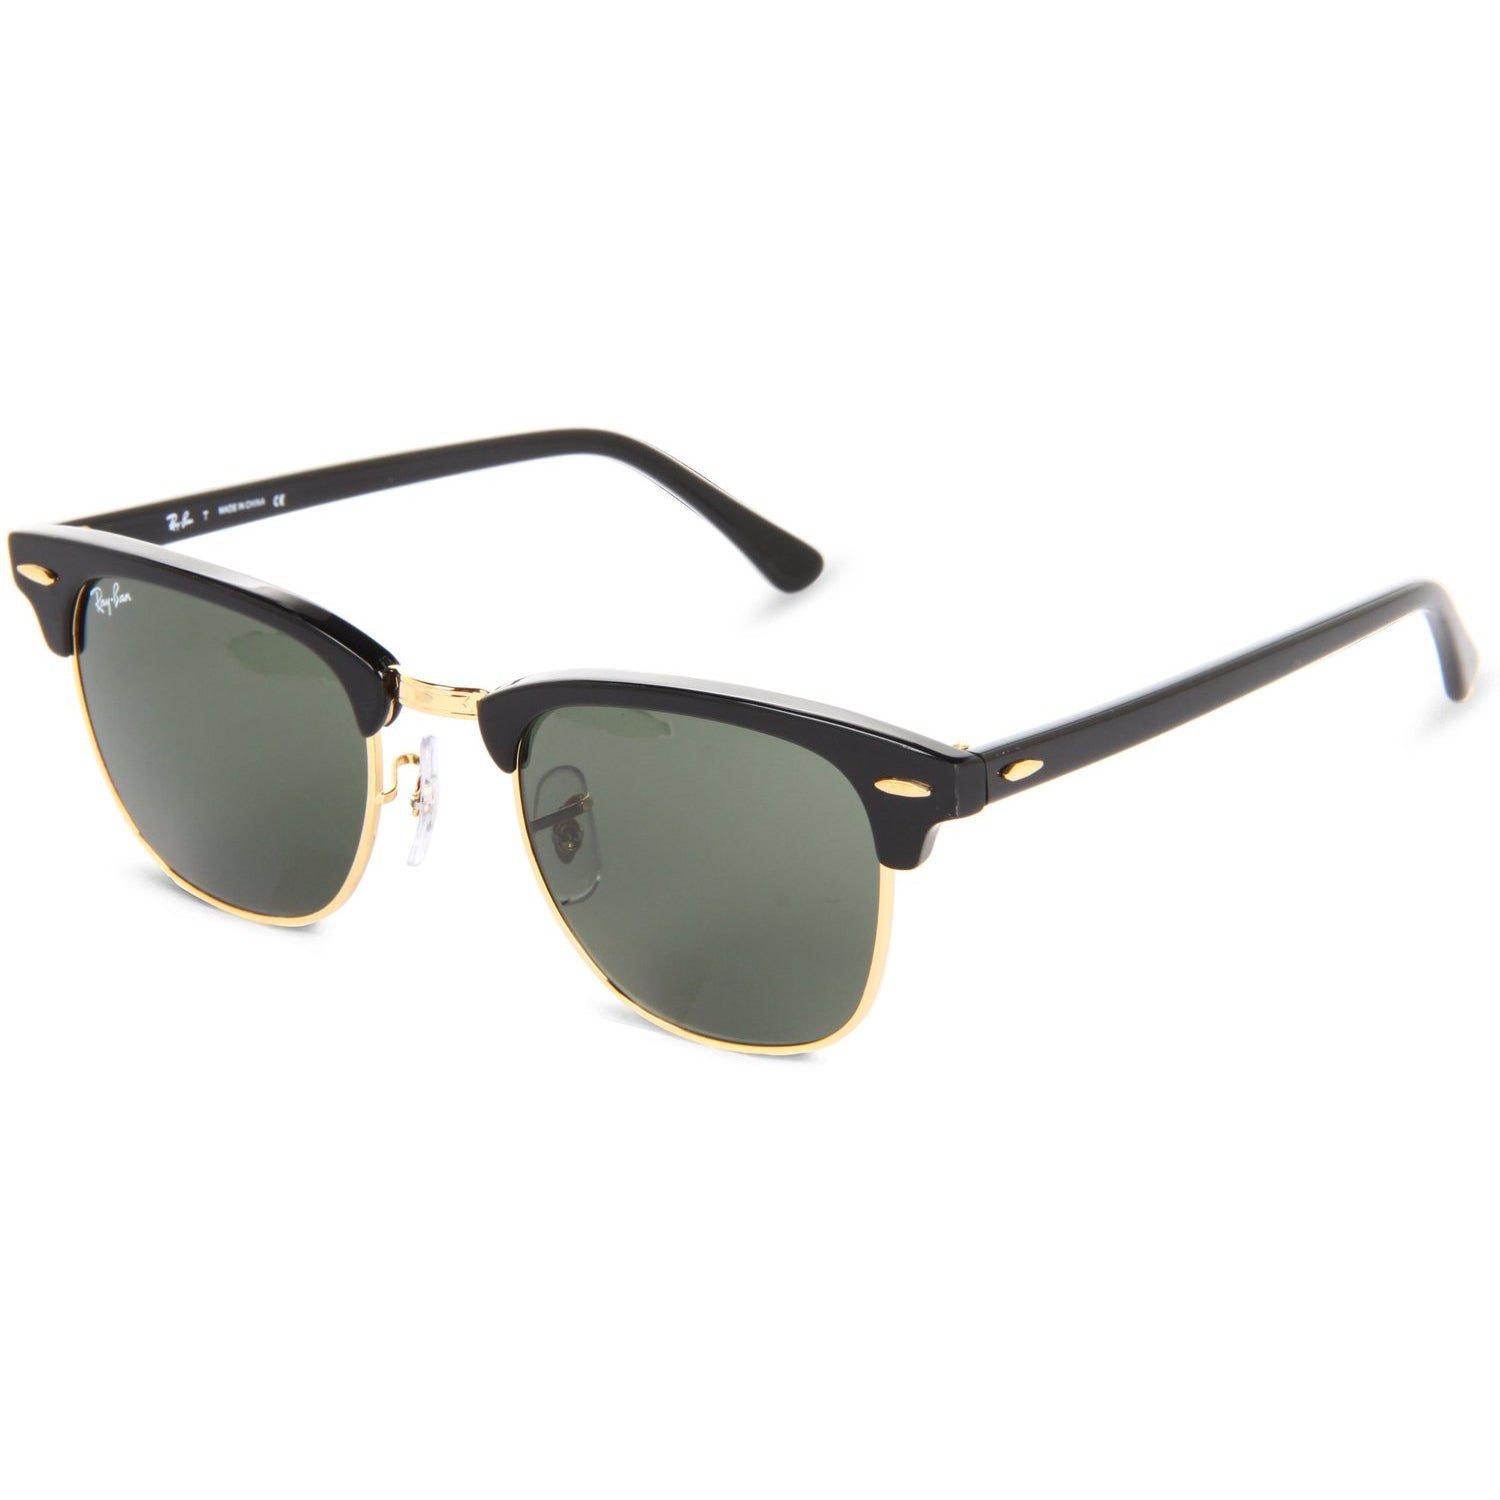 f771a64dfe5 Ray-Ban Clubmaster RB3016 Unisex Black Frame Green Classic Sunglasses